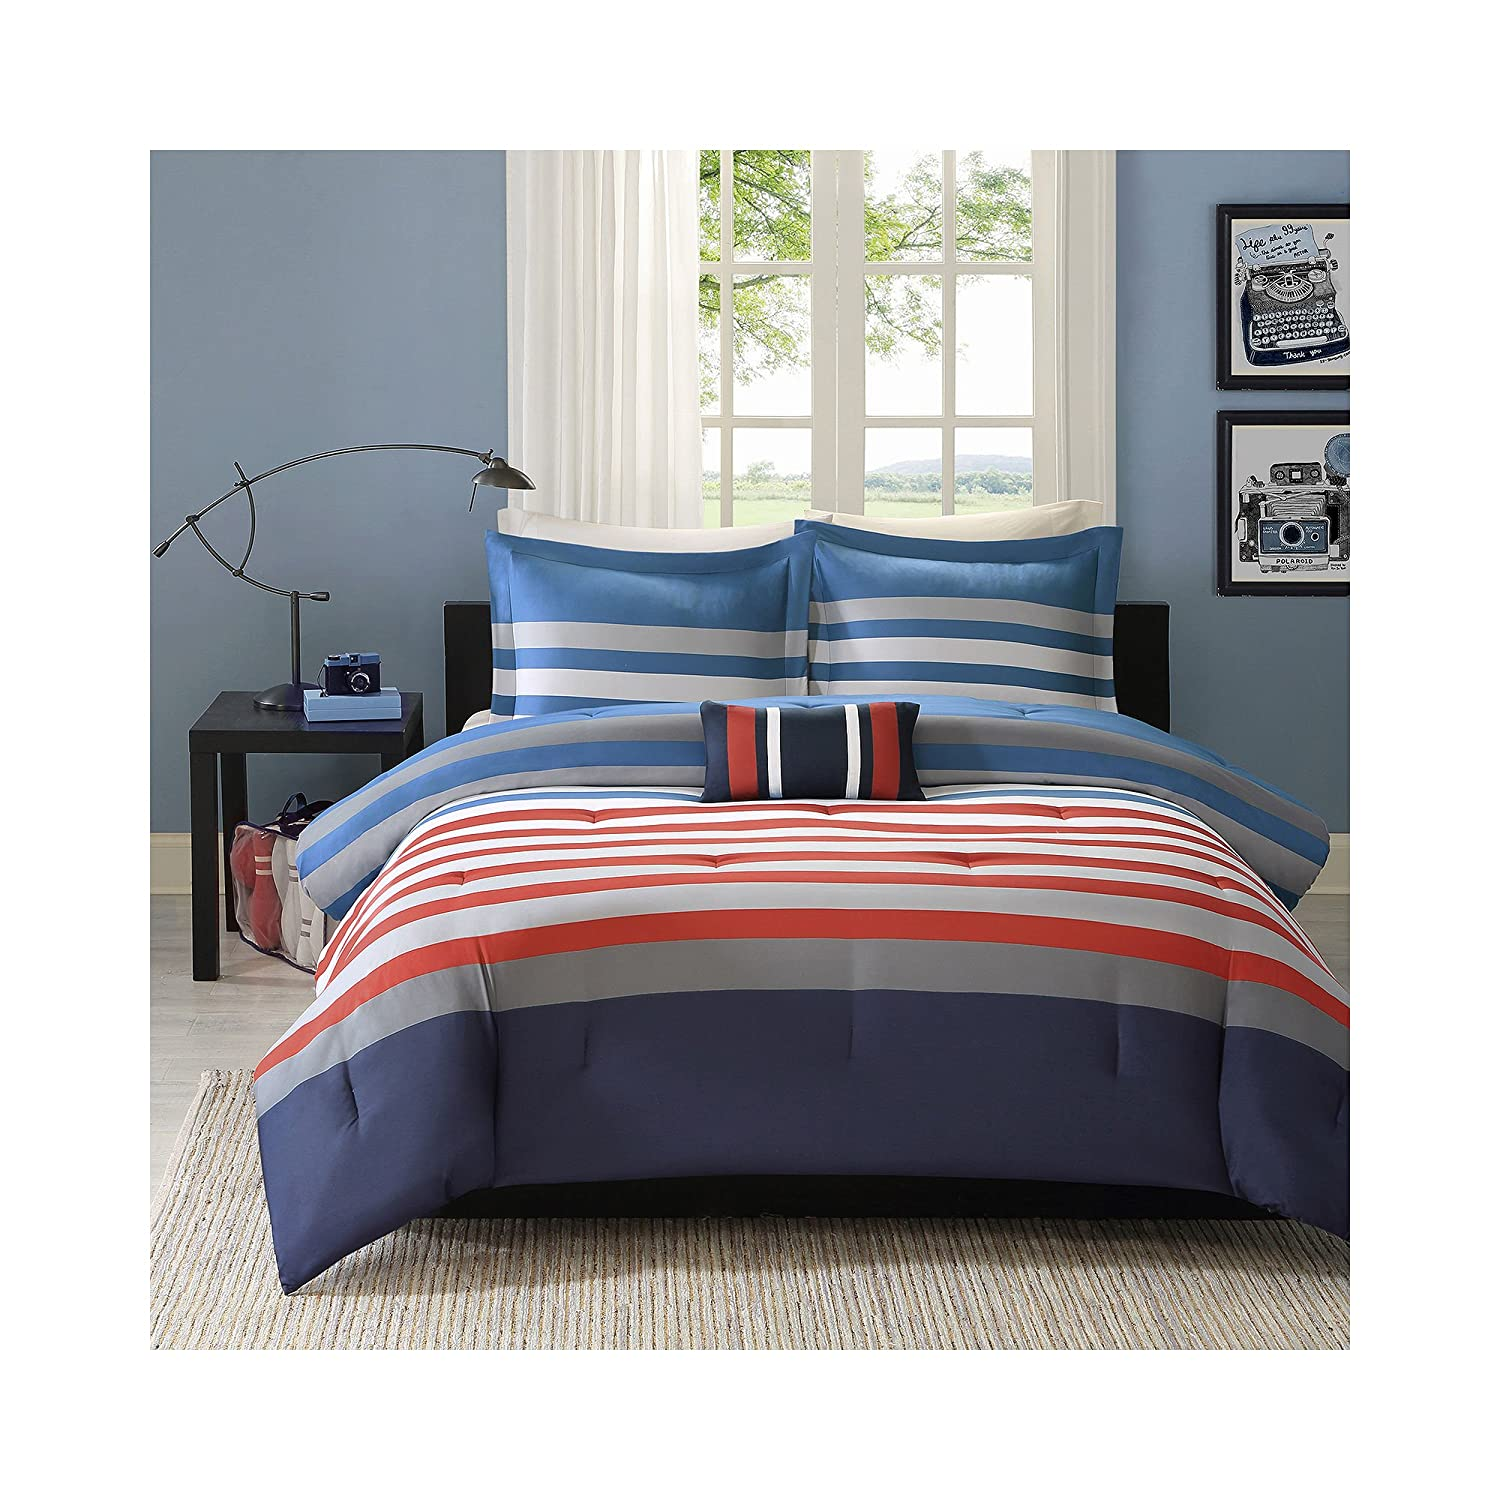 Mizone Kyle 4 Piece Comforter Set, Red/Blue, Full/Queen